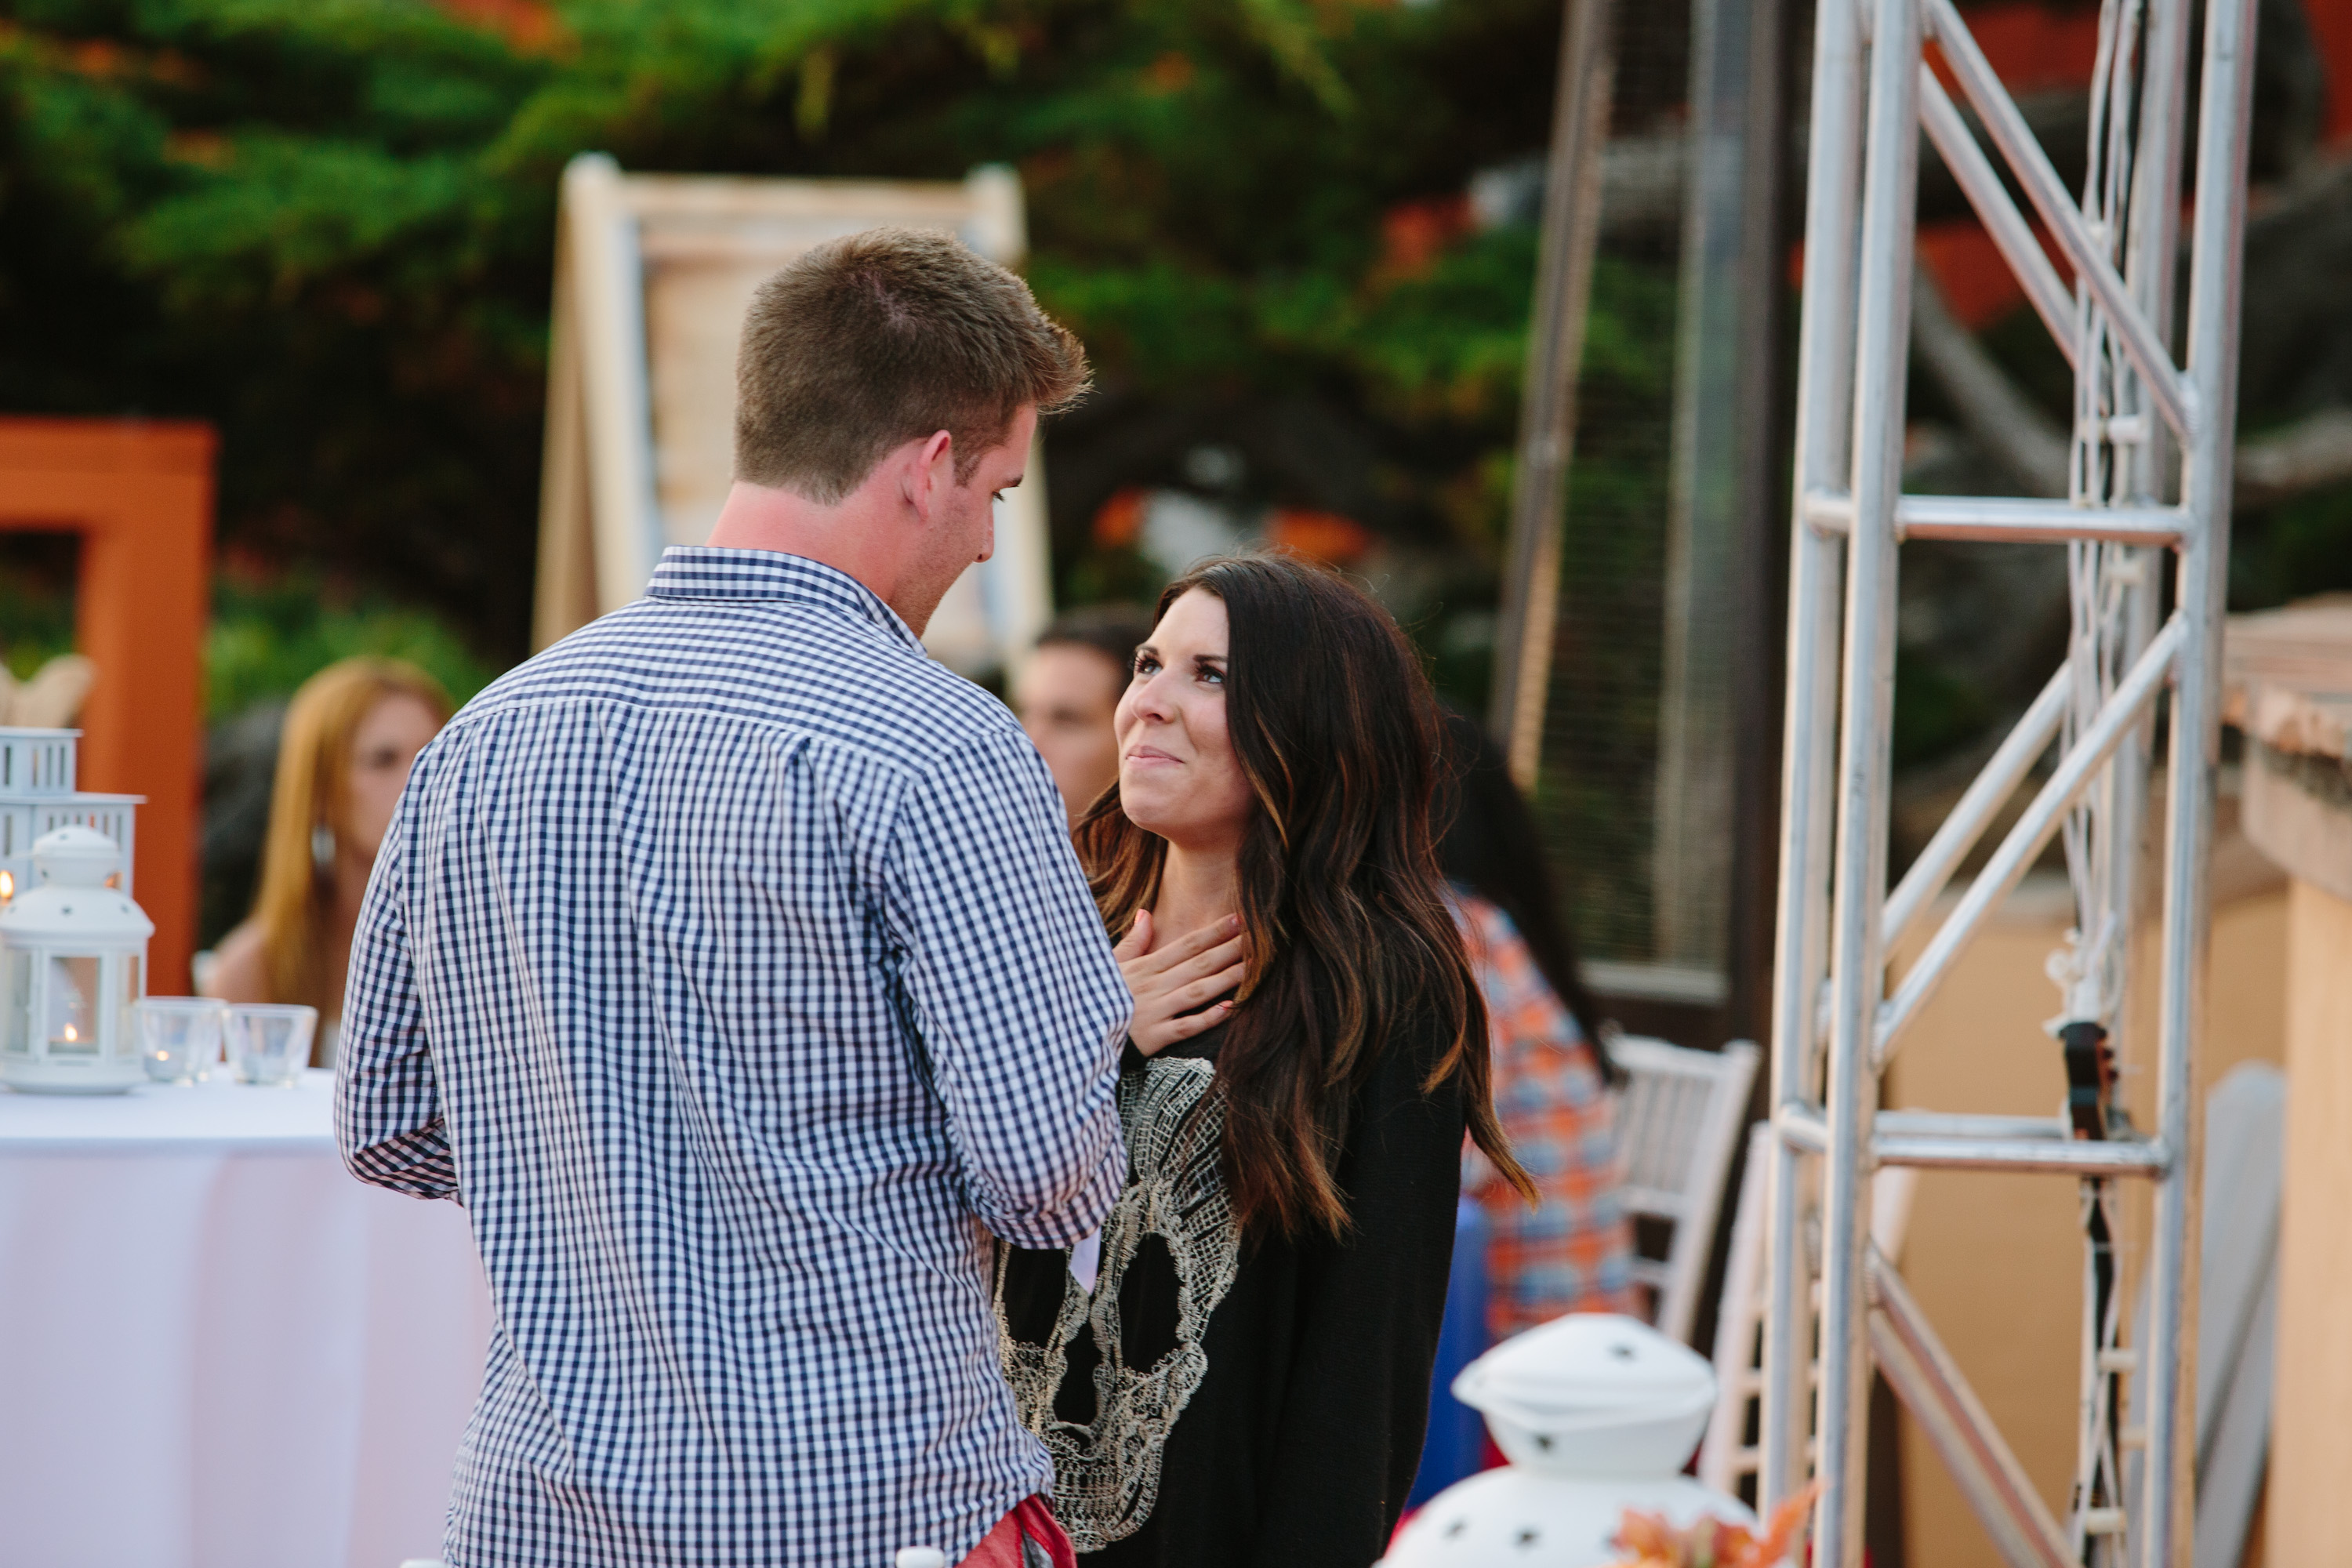 Image 4 of 4th of July Marriage Proposal